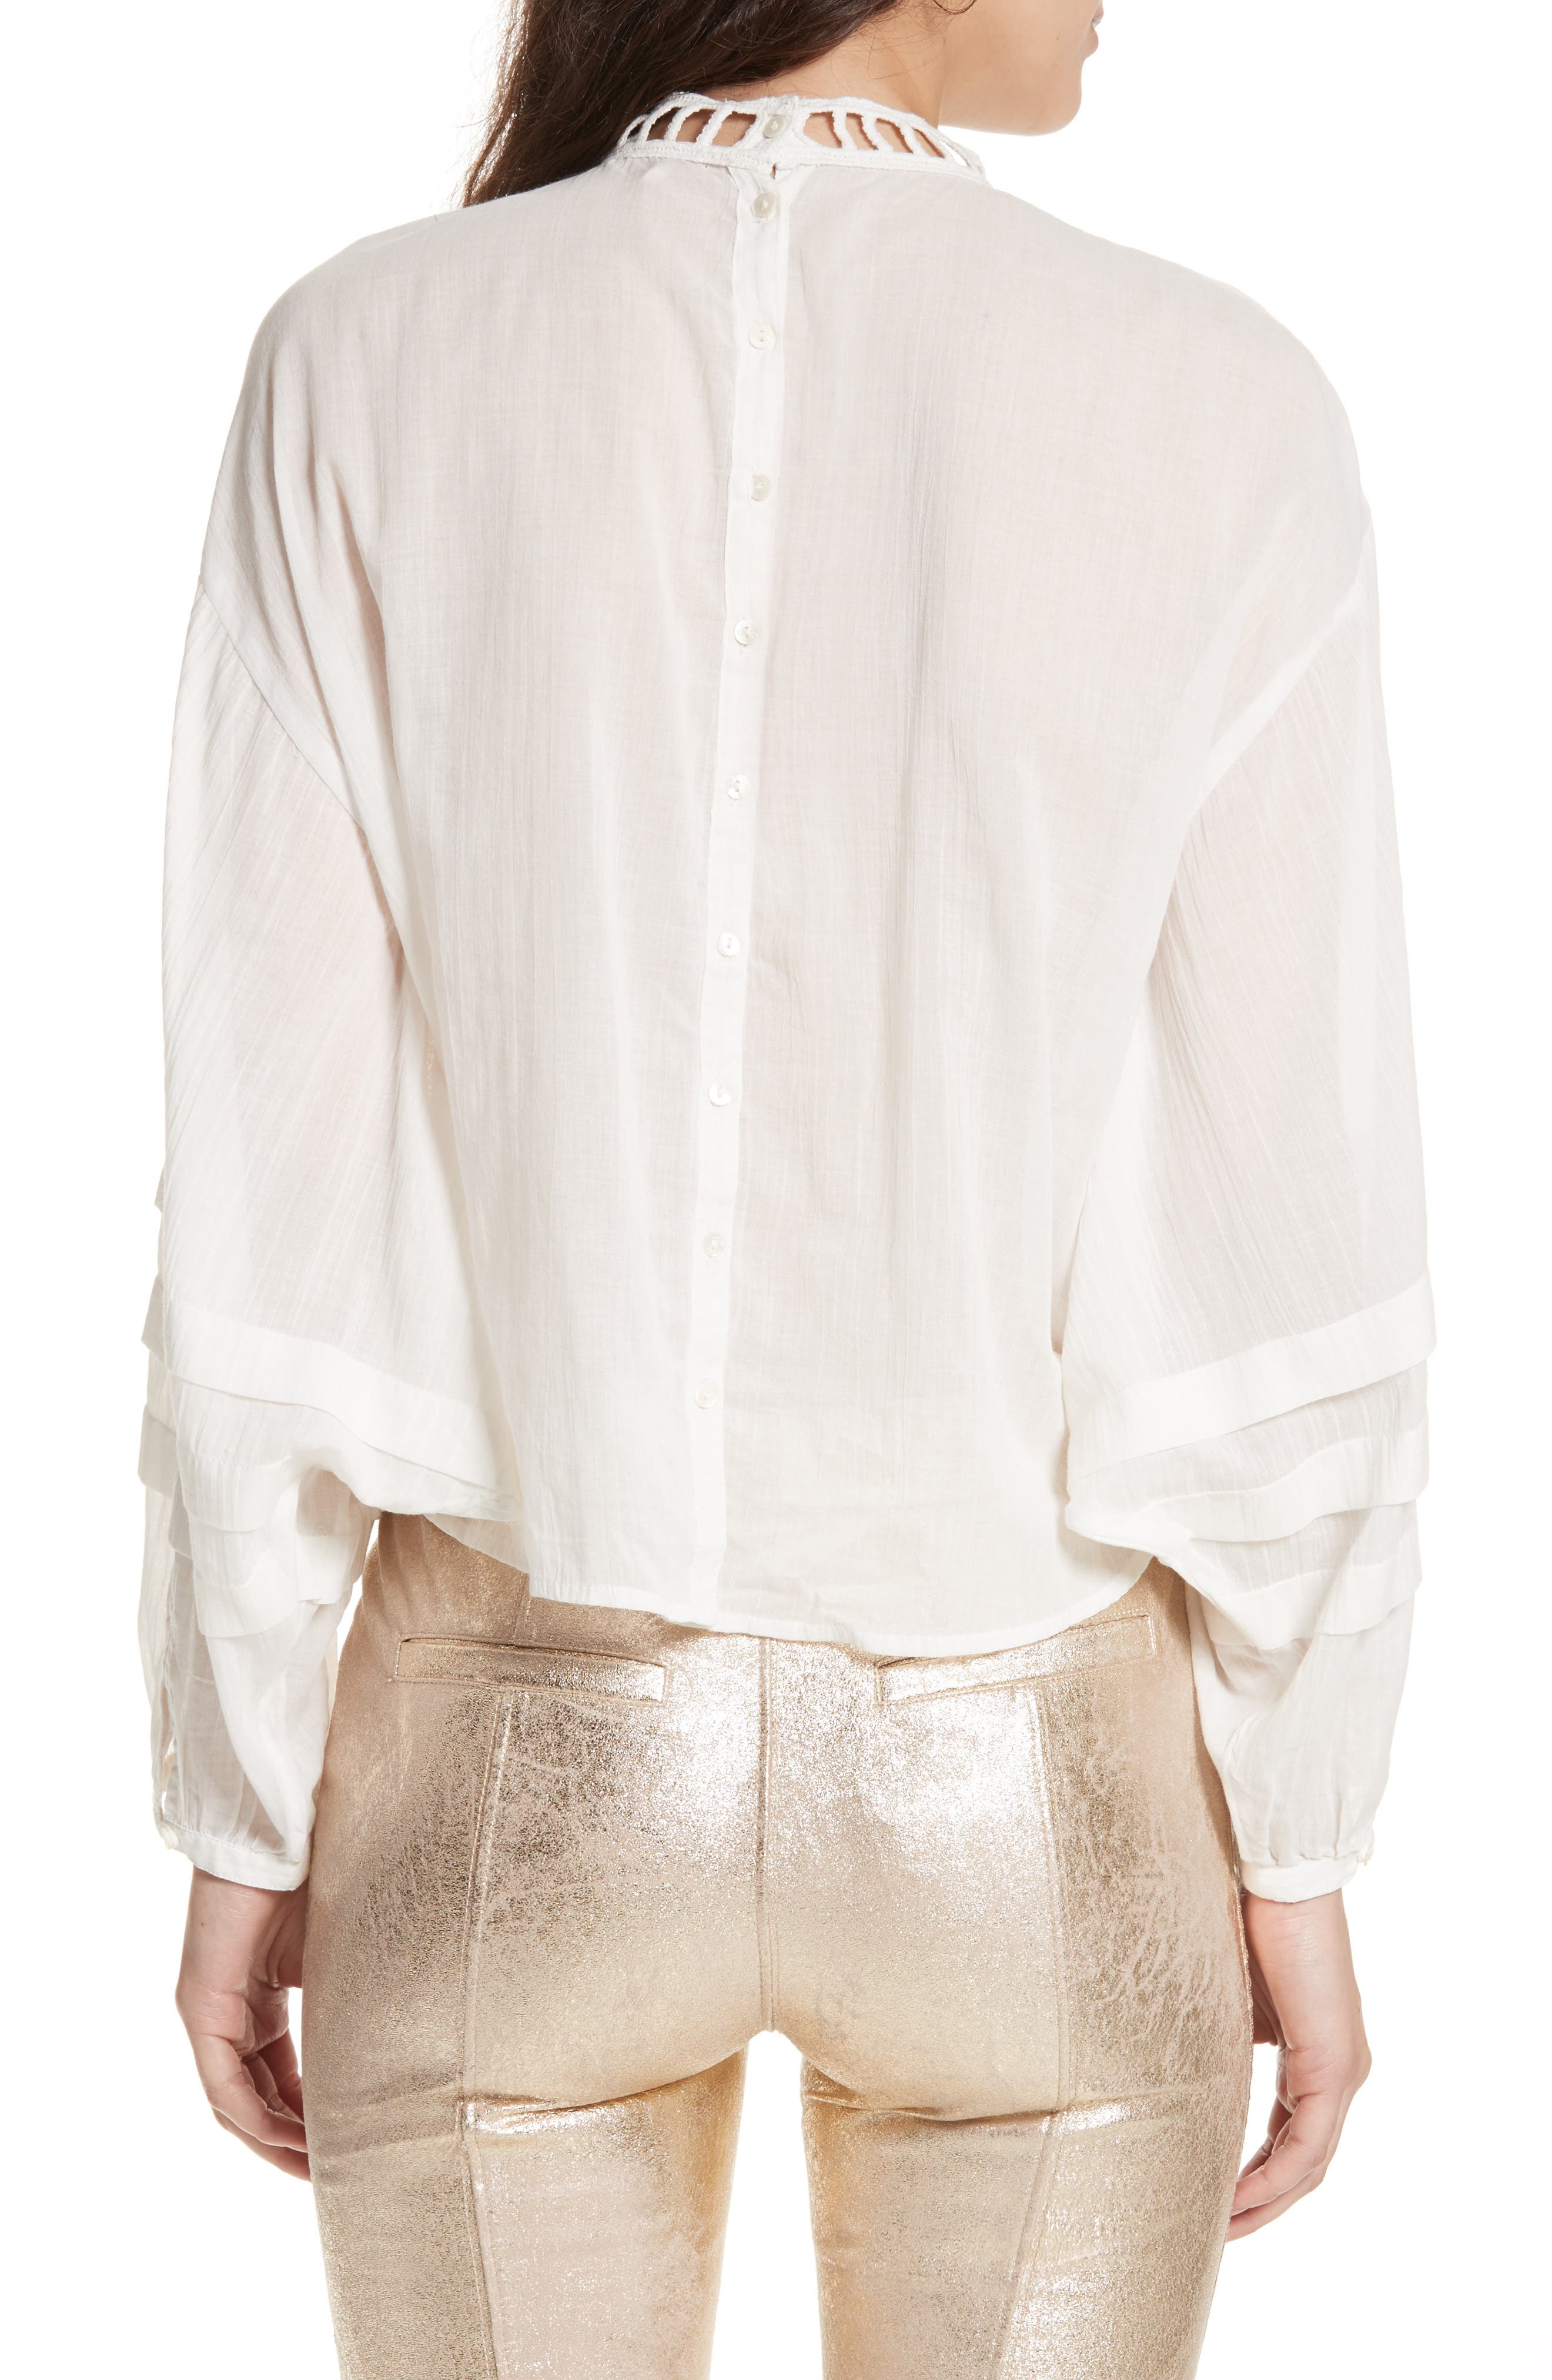 Heart of Gold Embellished Blouse,                             Alternate thumbnail 3, color,